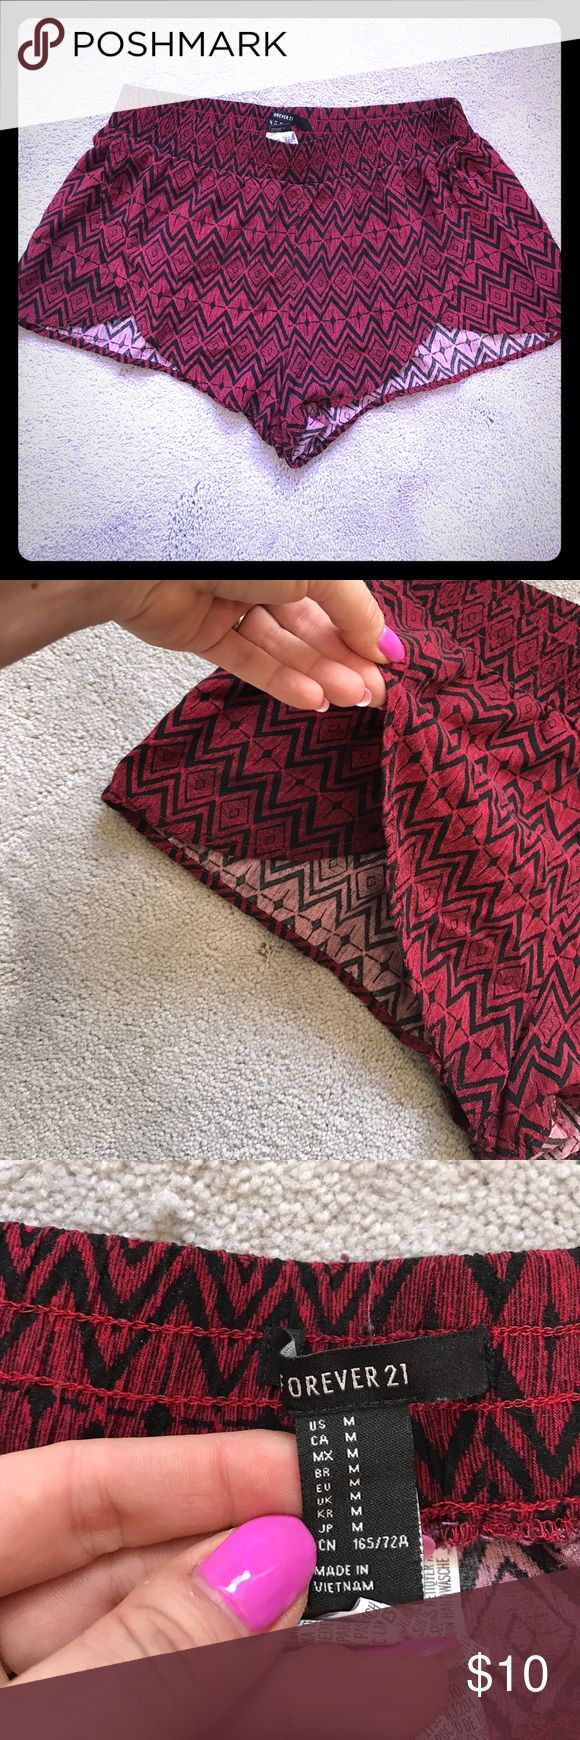 Forever 21 Aztec print shorts Forever 21 size medium flowy shorts. Elastic waistband, 100% rayon. These things are so comfy! Great for throwing on after a swim or lounging around on hot days! Forever 21 Shorts